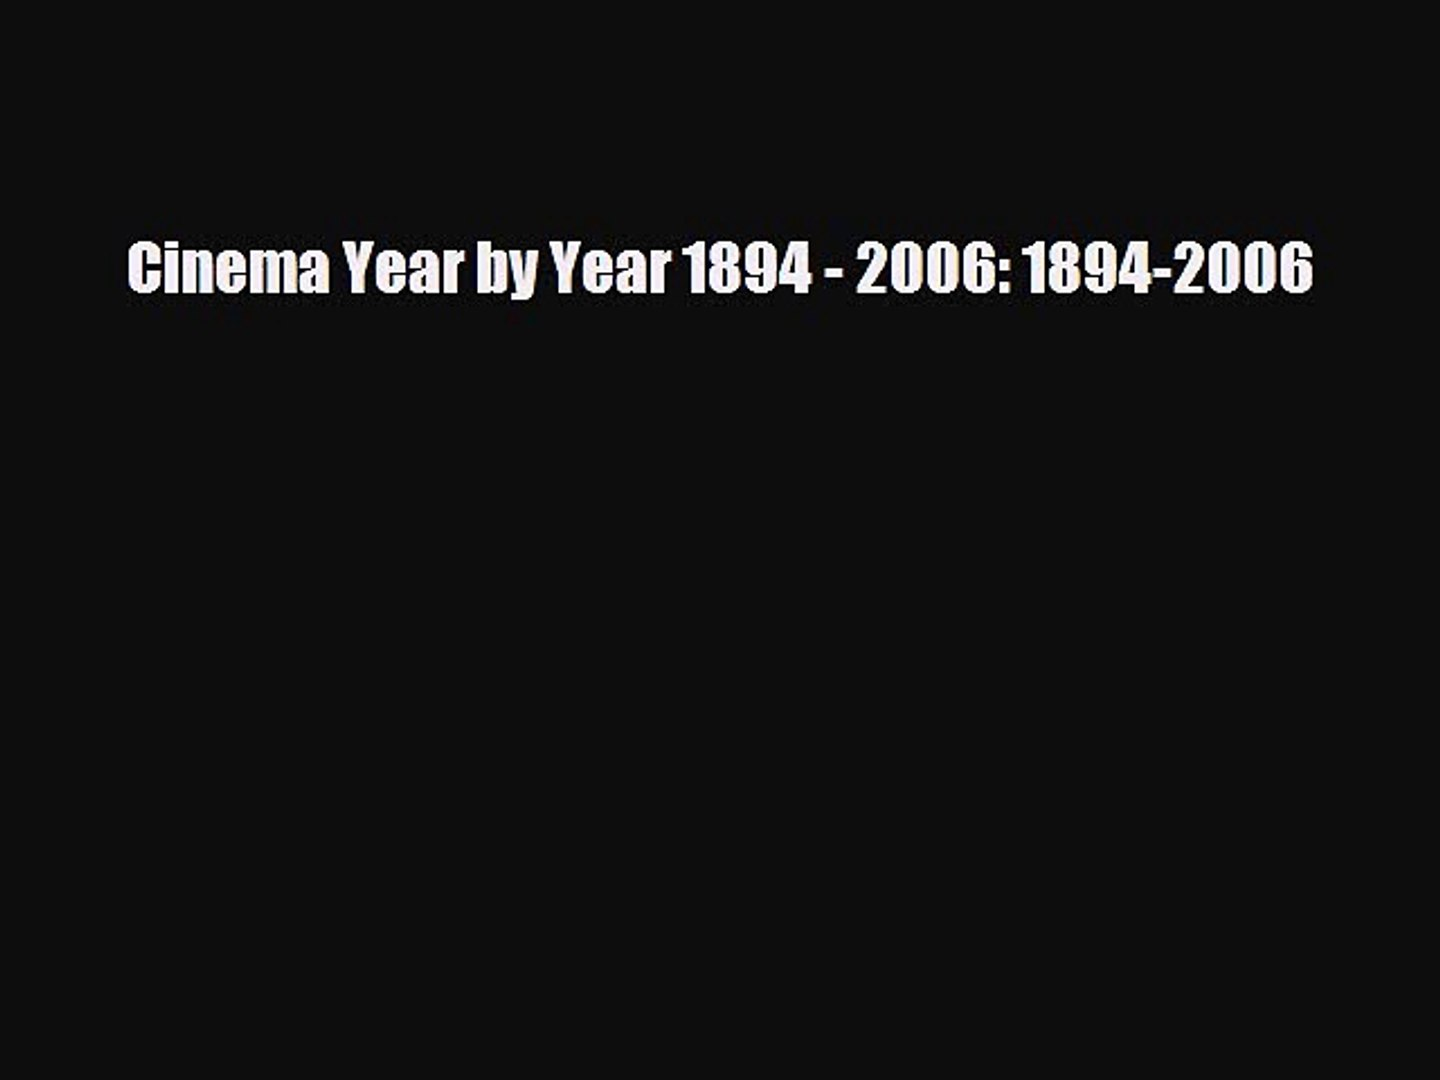 [PDF] Cinema Year by Year 1894 - 2006: 1894-2006 Download Full Ebook